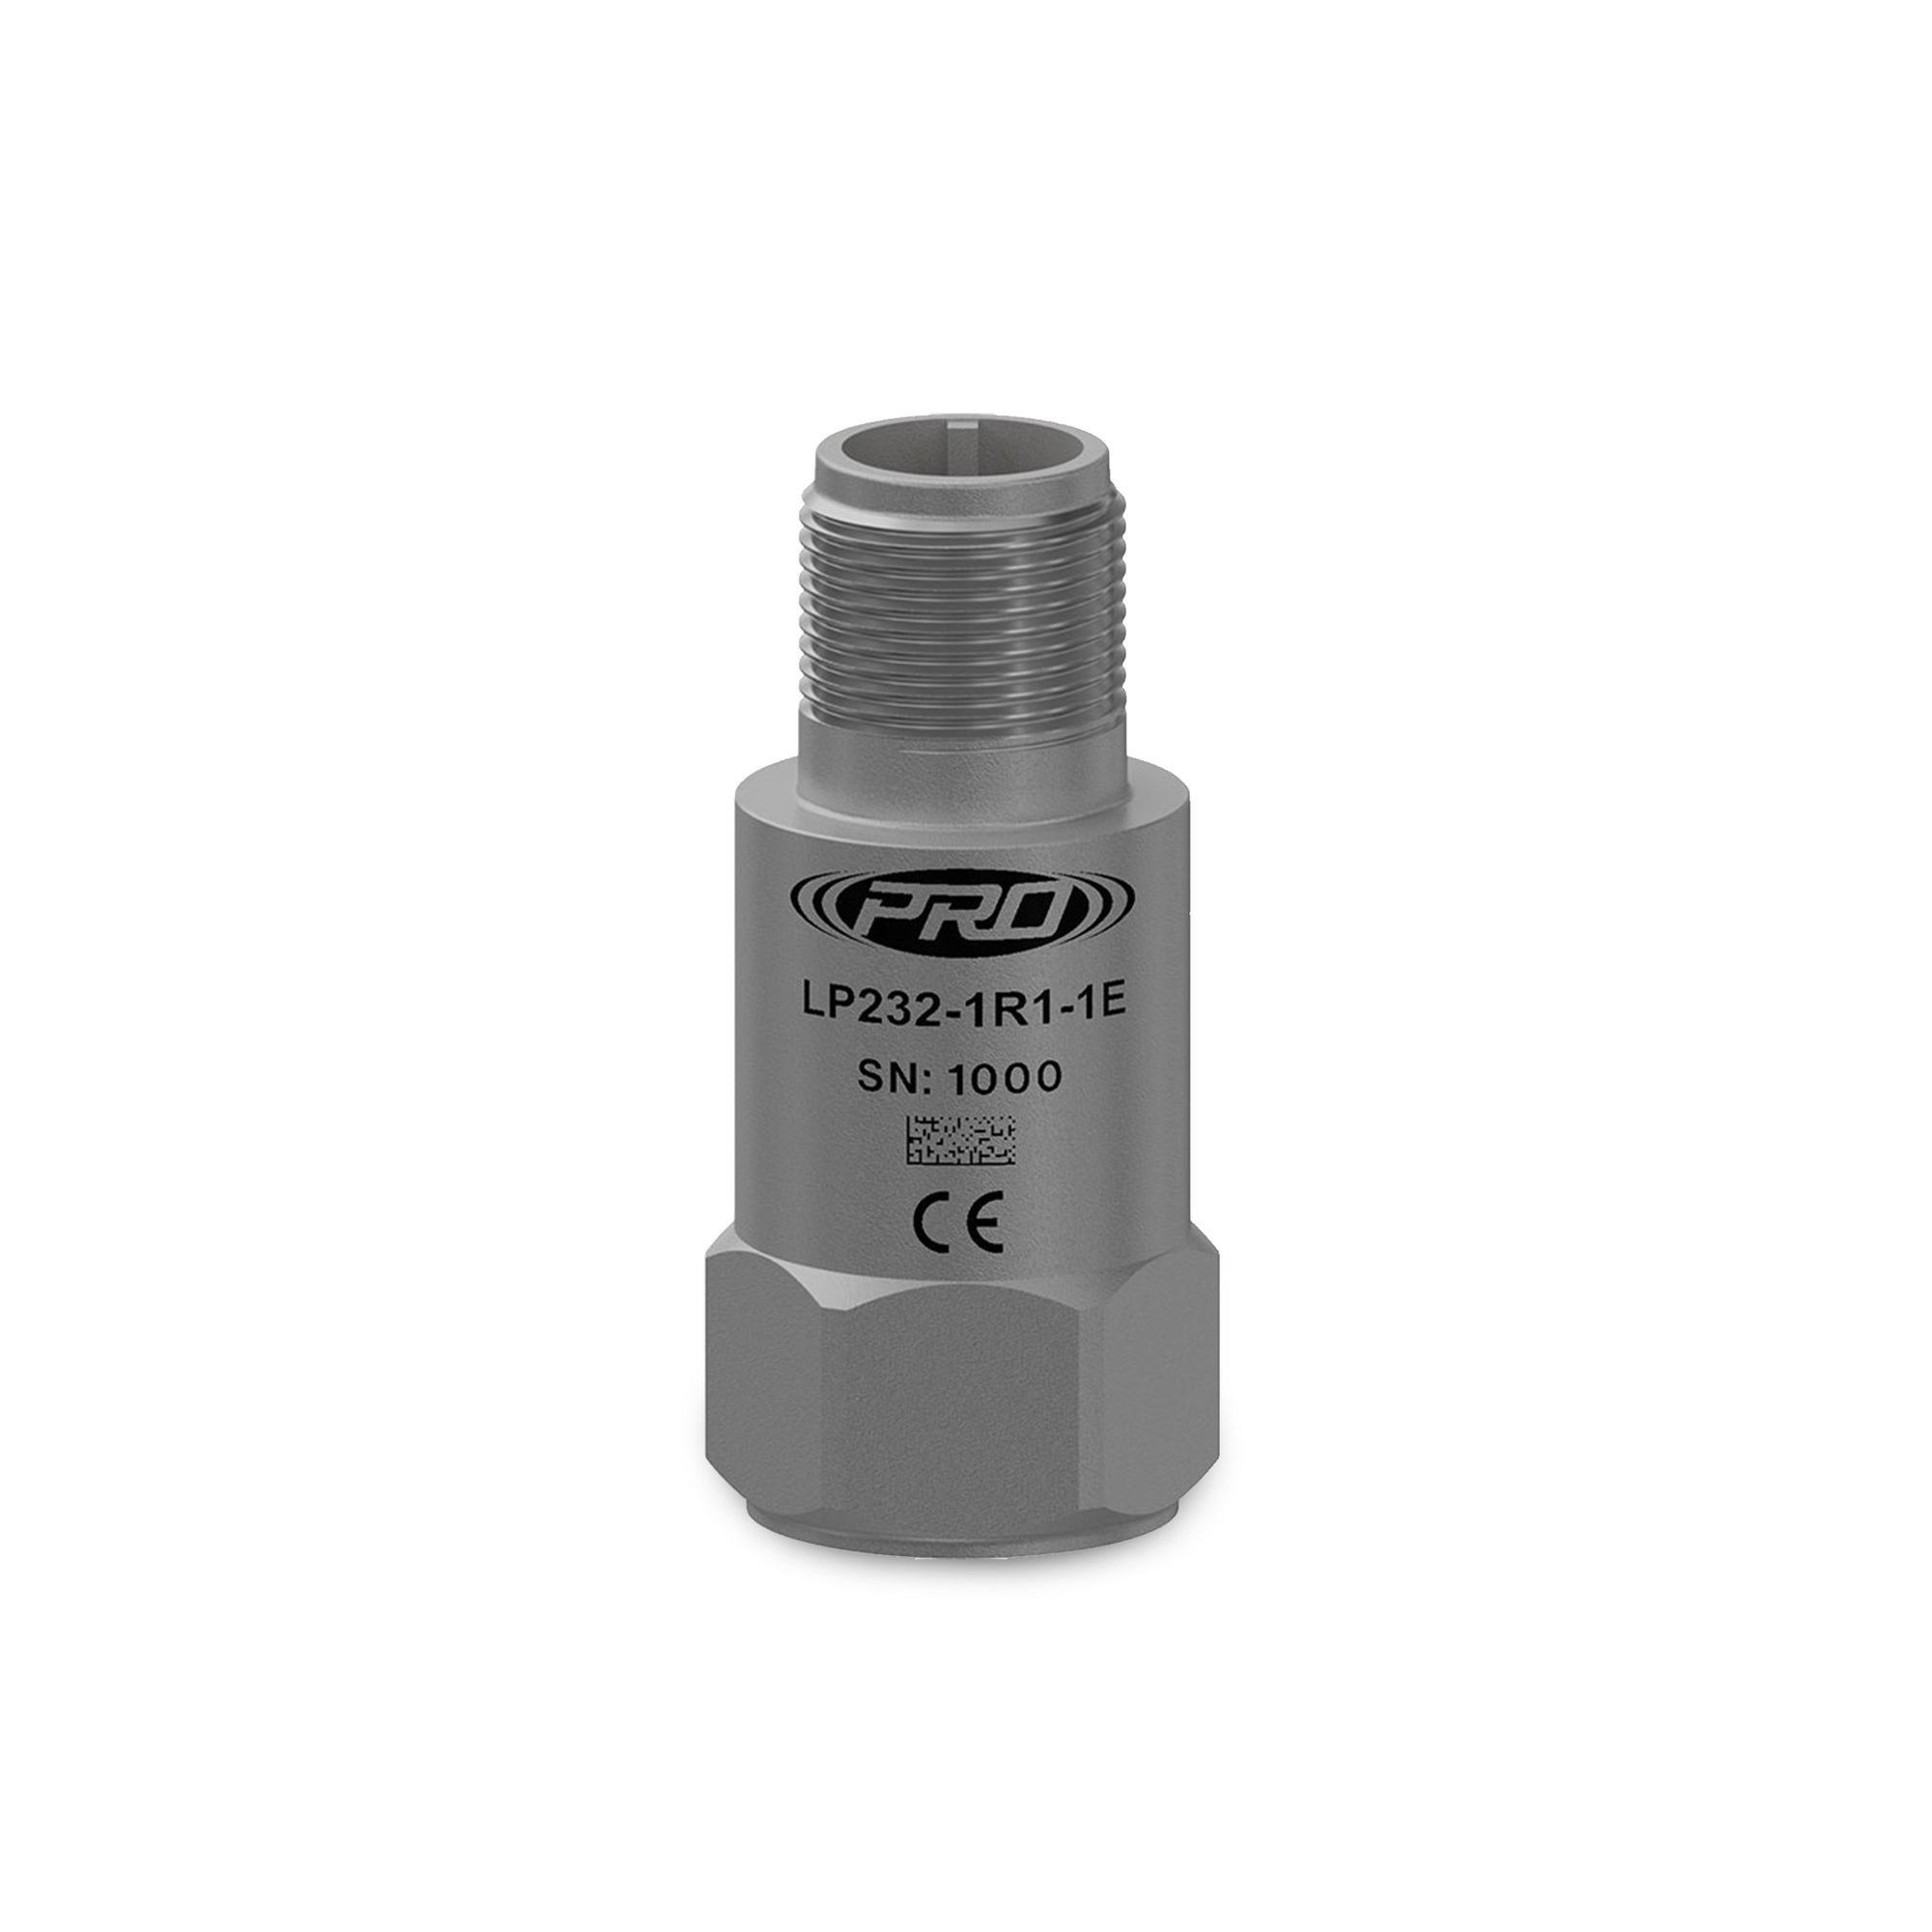 M/LP232-4R1-1E 0-20mm/s FS with temperature output 2.5 to 100°C, 4-20mA vibration transmitter